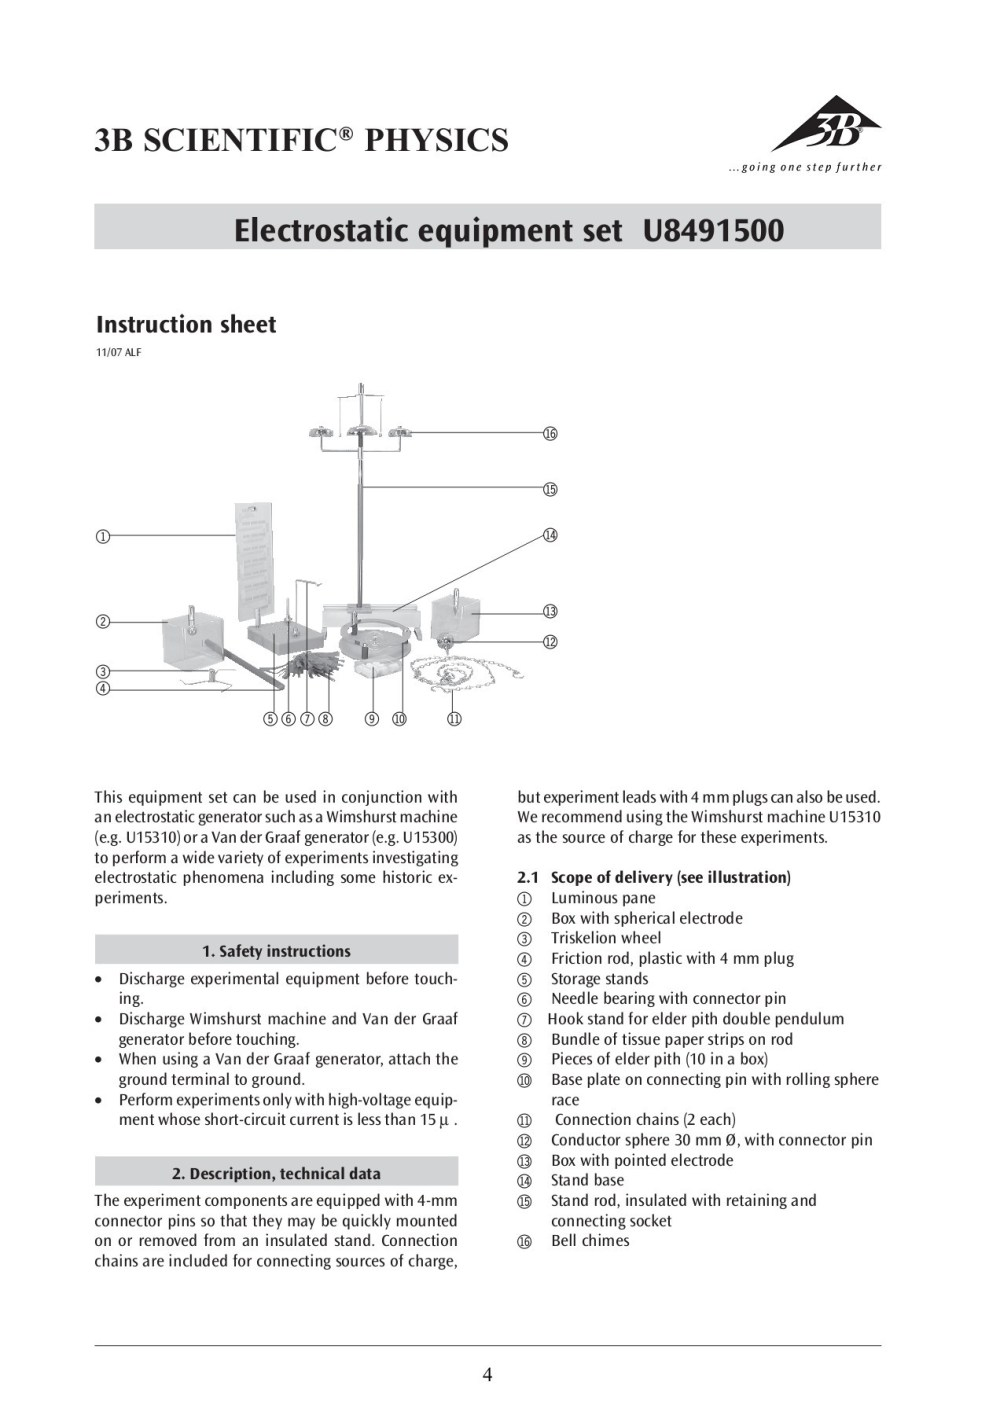 medium resolution of 3b scientific physics electrostatic equipment set u8491500 pages 1 4 text version fliphtml5